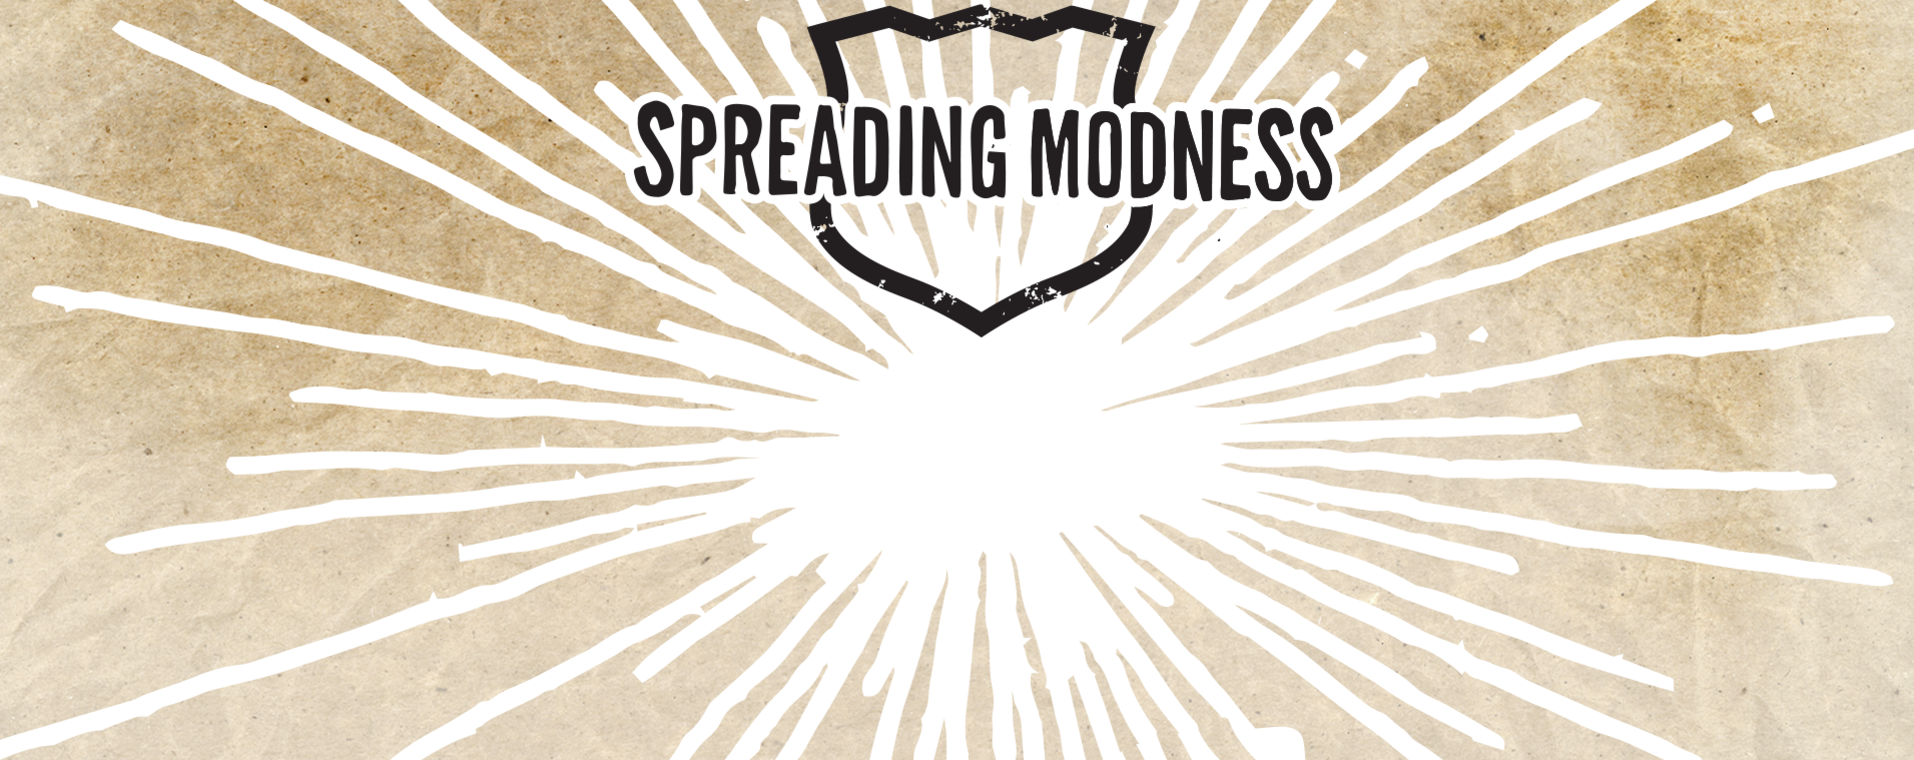 Desktop spreading modness banner take 2